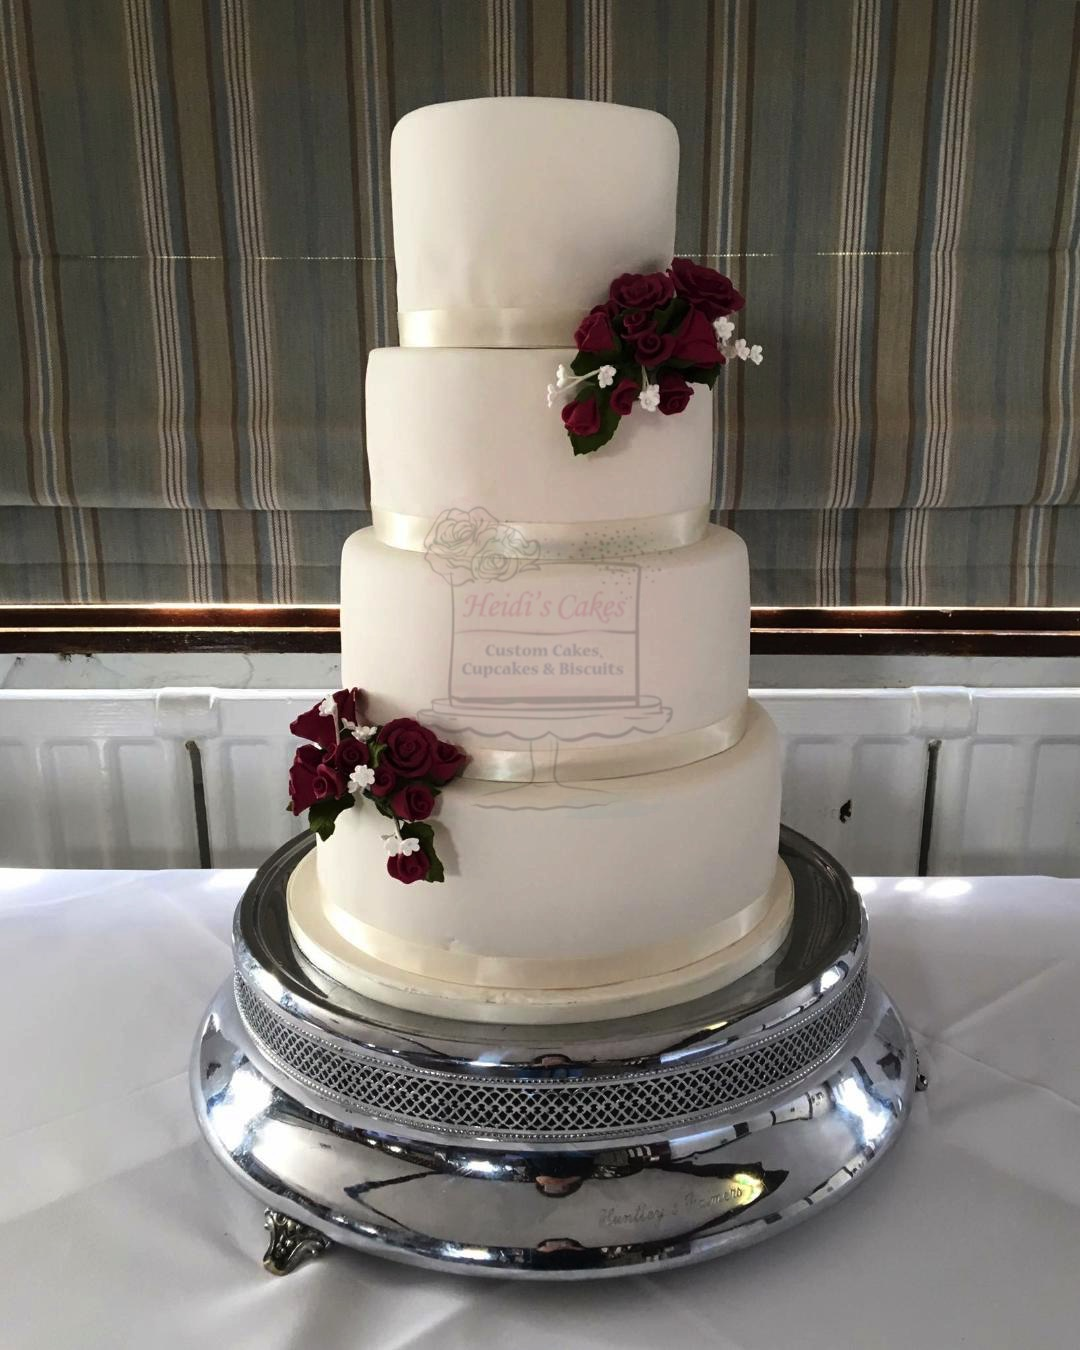 Ivory with Burgandy Flowers 4 Tier